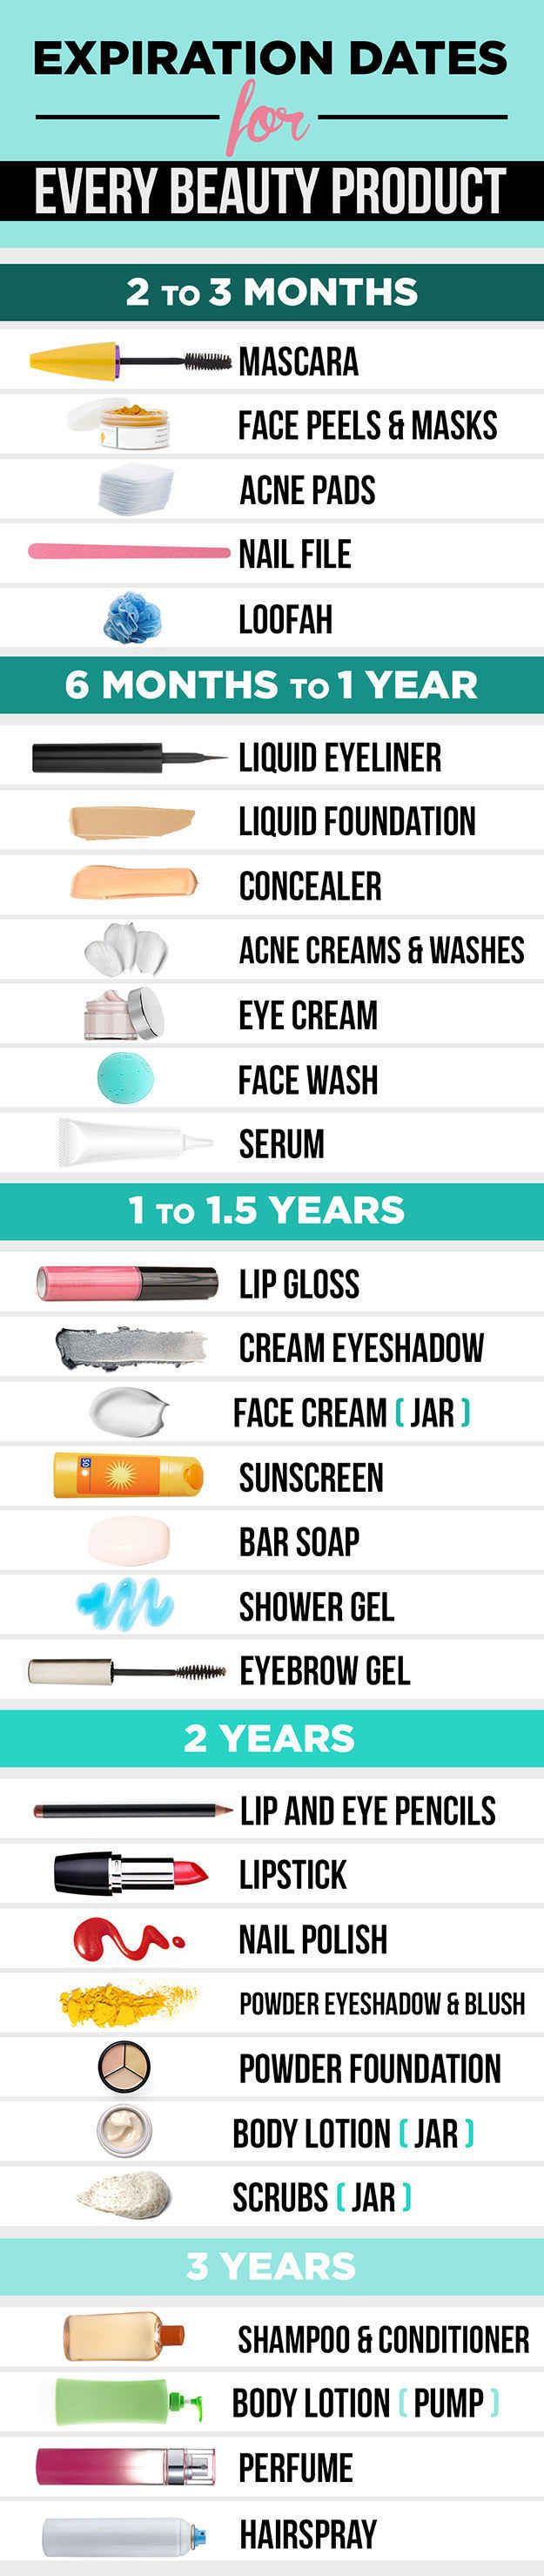 And lastly, know when it's time to throw away the products in your makeup bag.